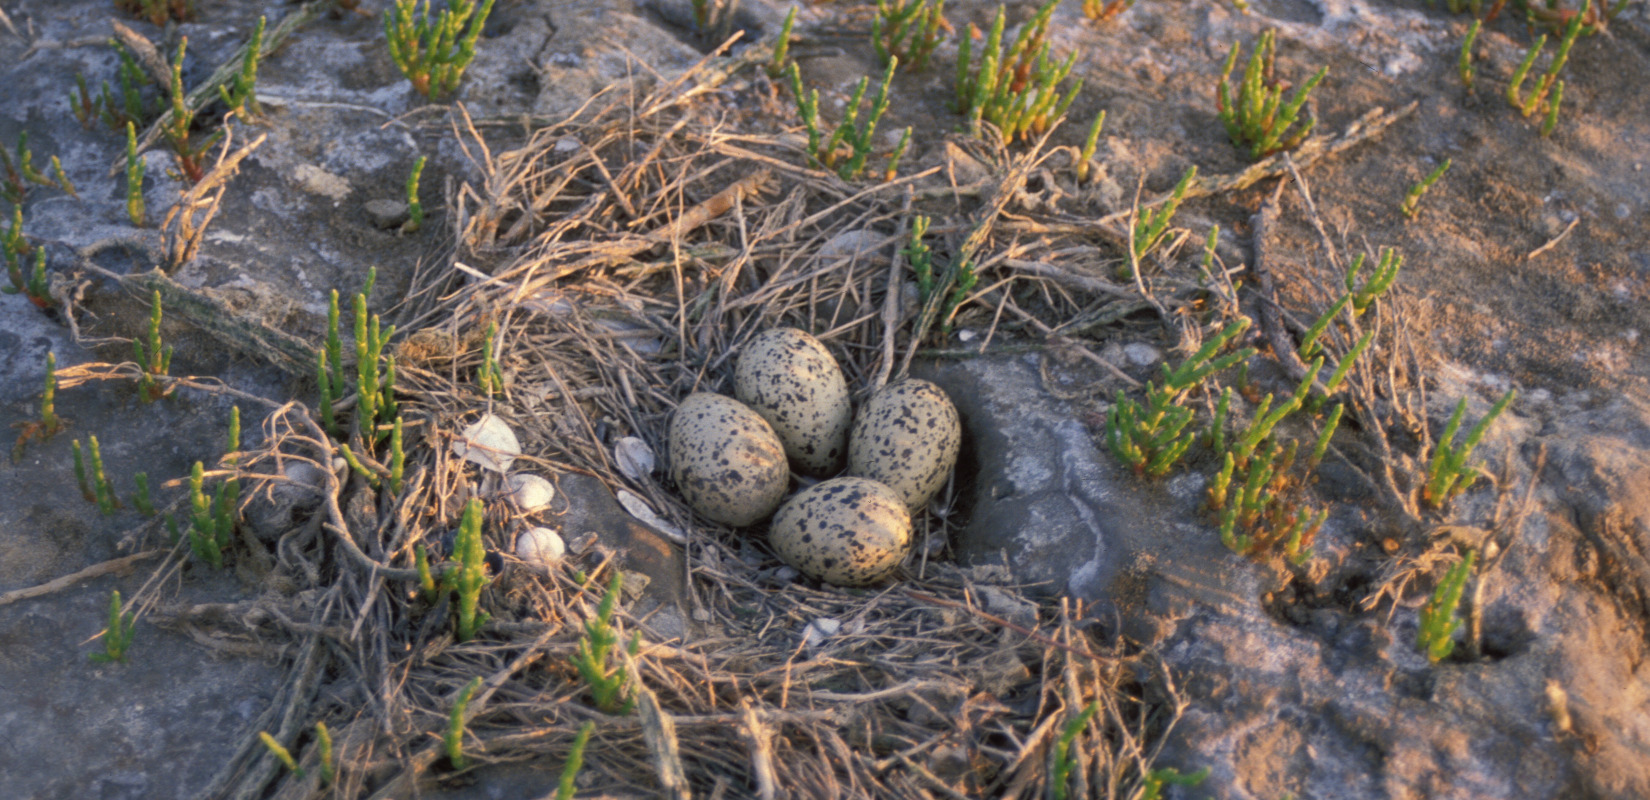 Herring gull nest with three eggs